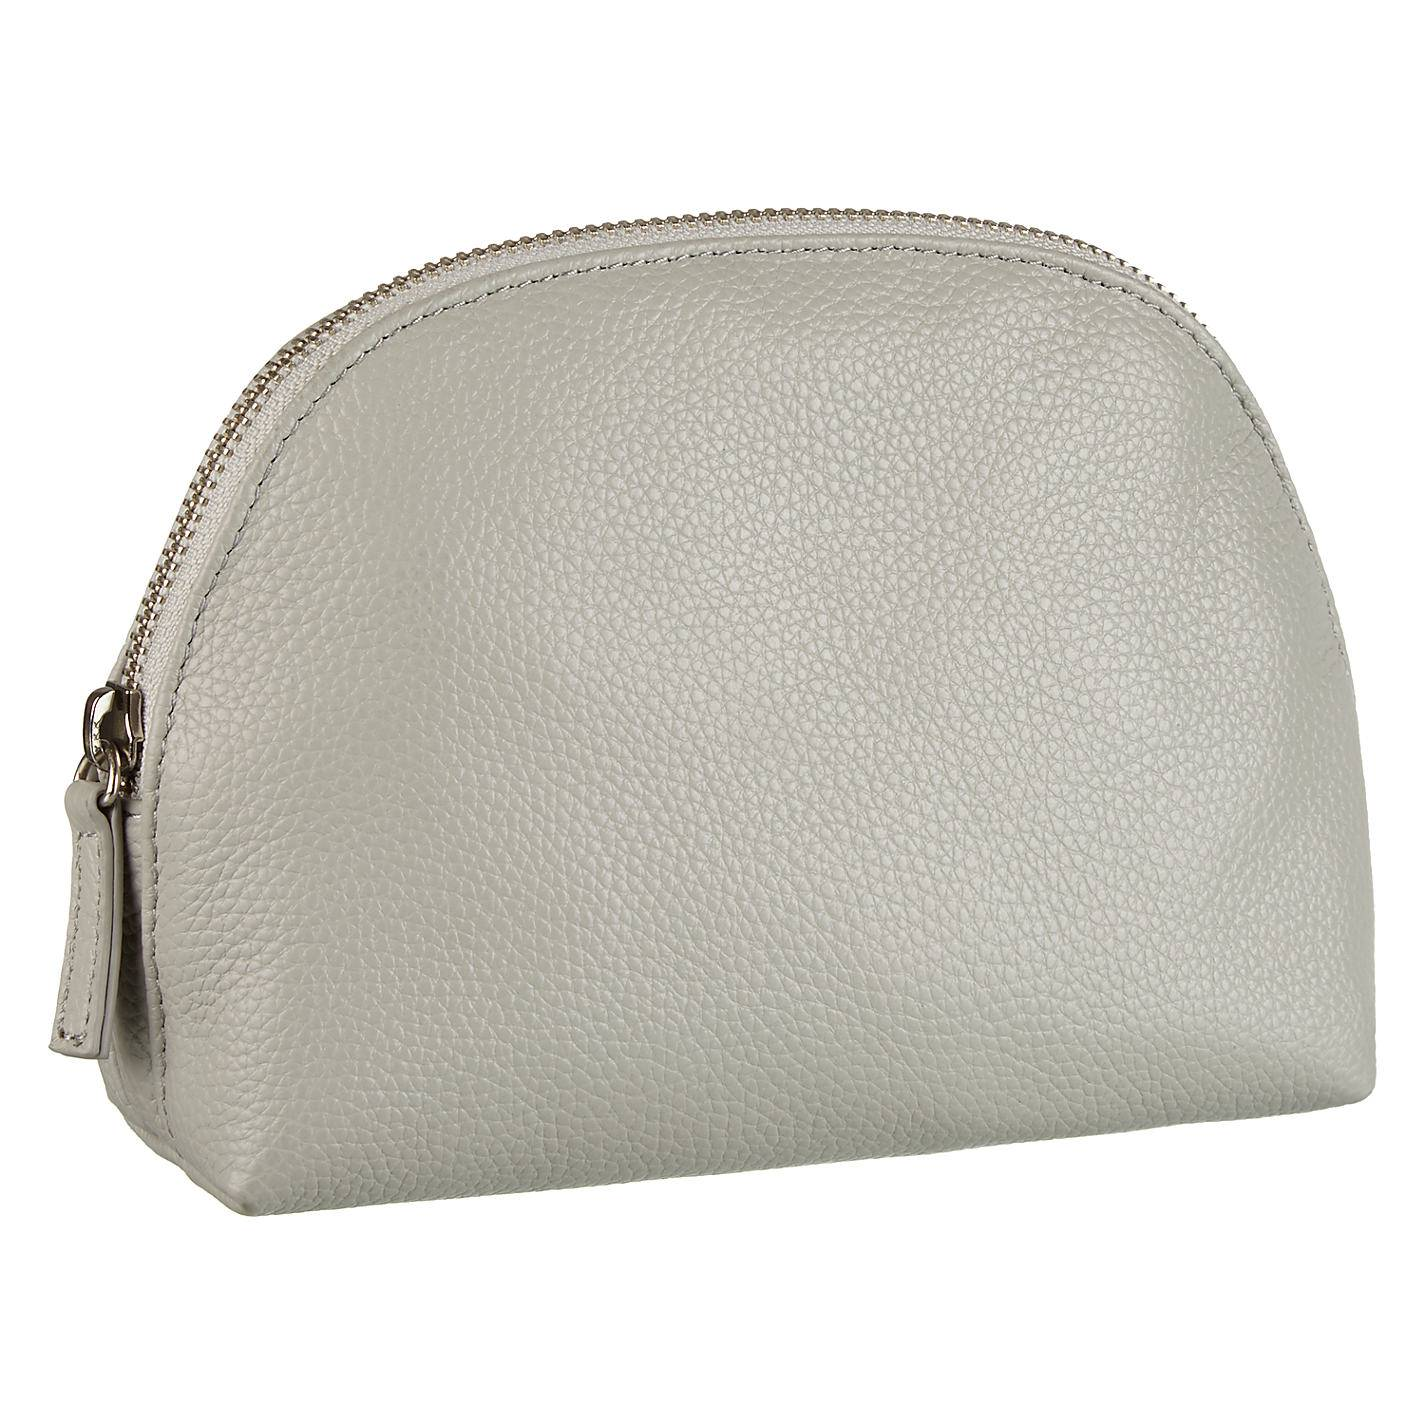 High quality leather cosmetic packaging bag